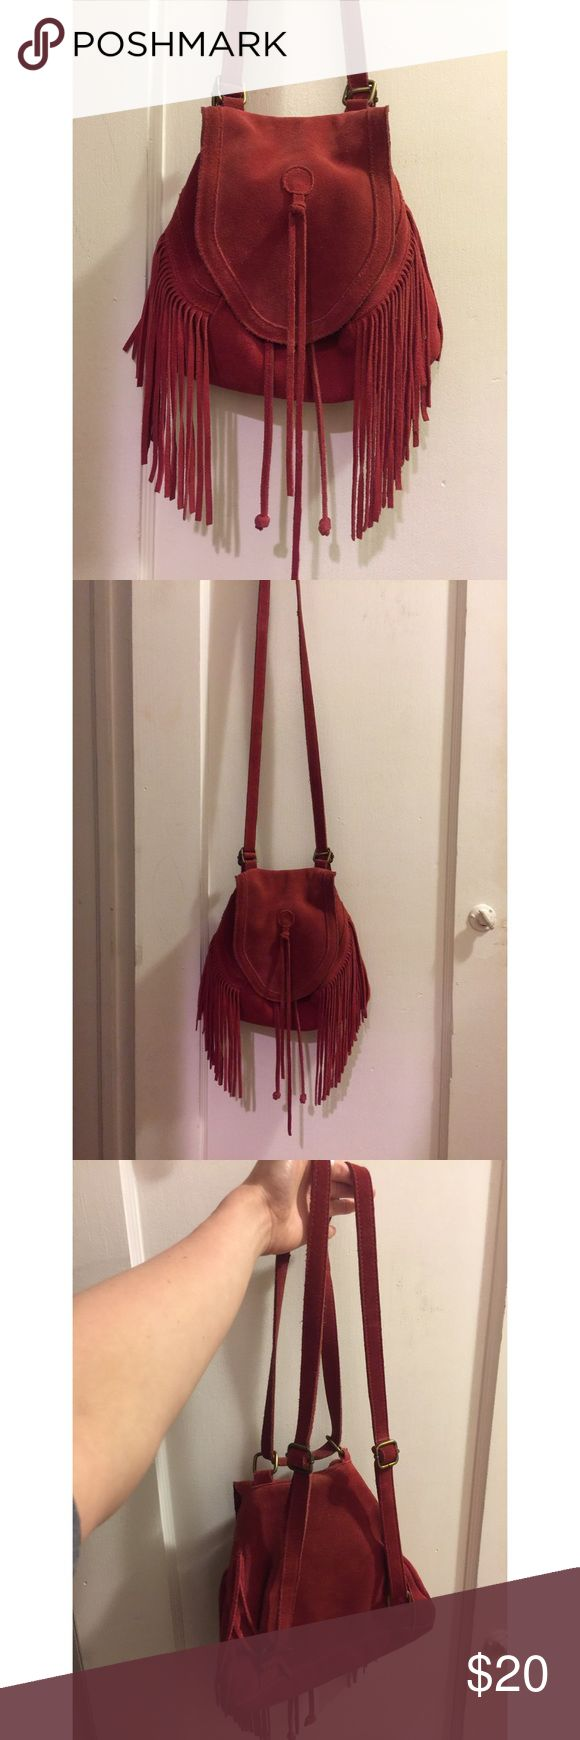 Red suede urban outfitters bag Red suede urban outfitters bag can be used as a satchel, or backpack or purse. Is a little worn but still looks in great condition. Urban Outfitters Bags Satchels